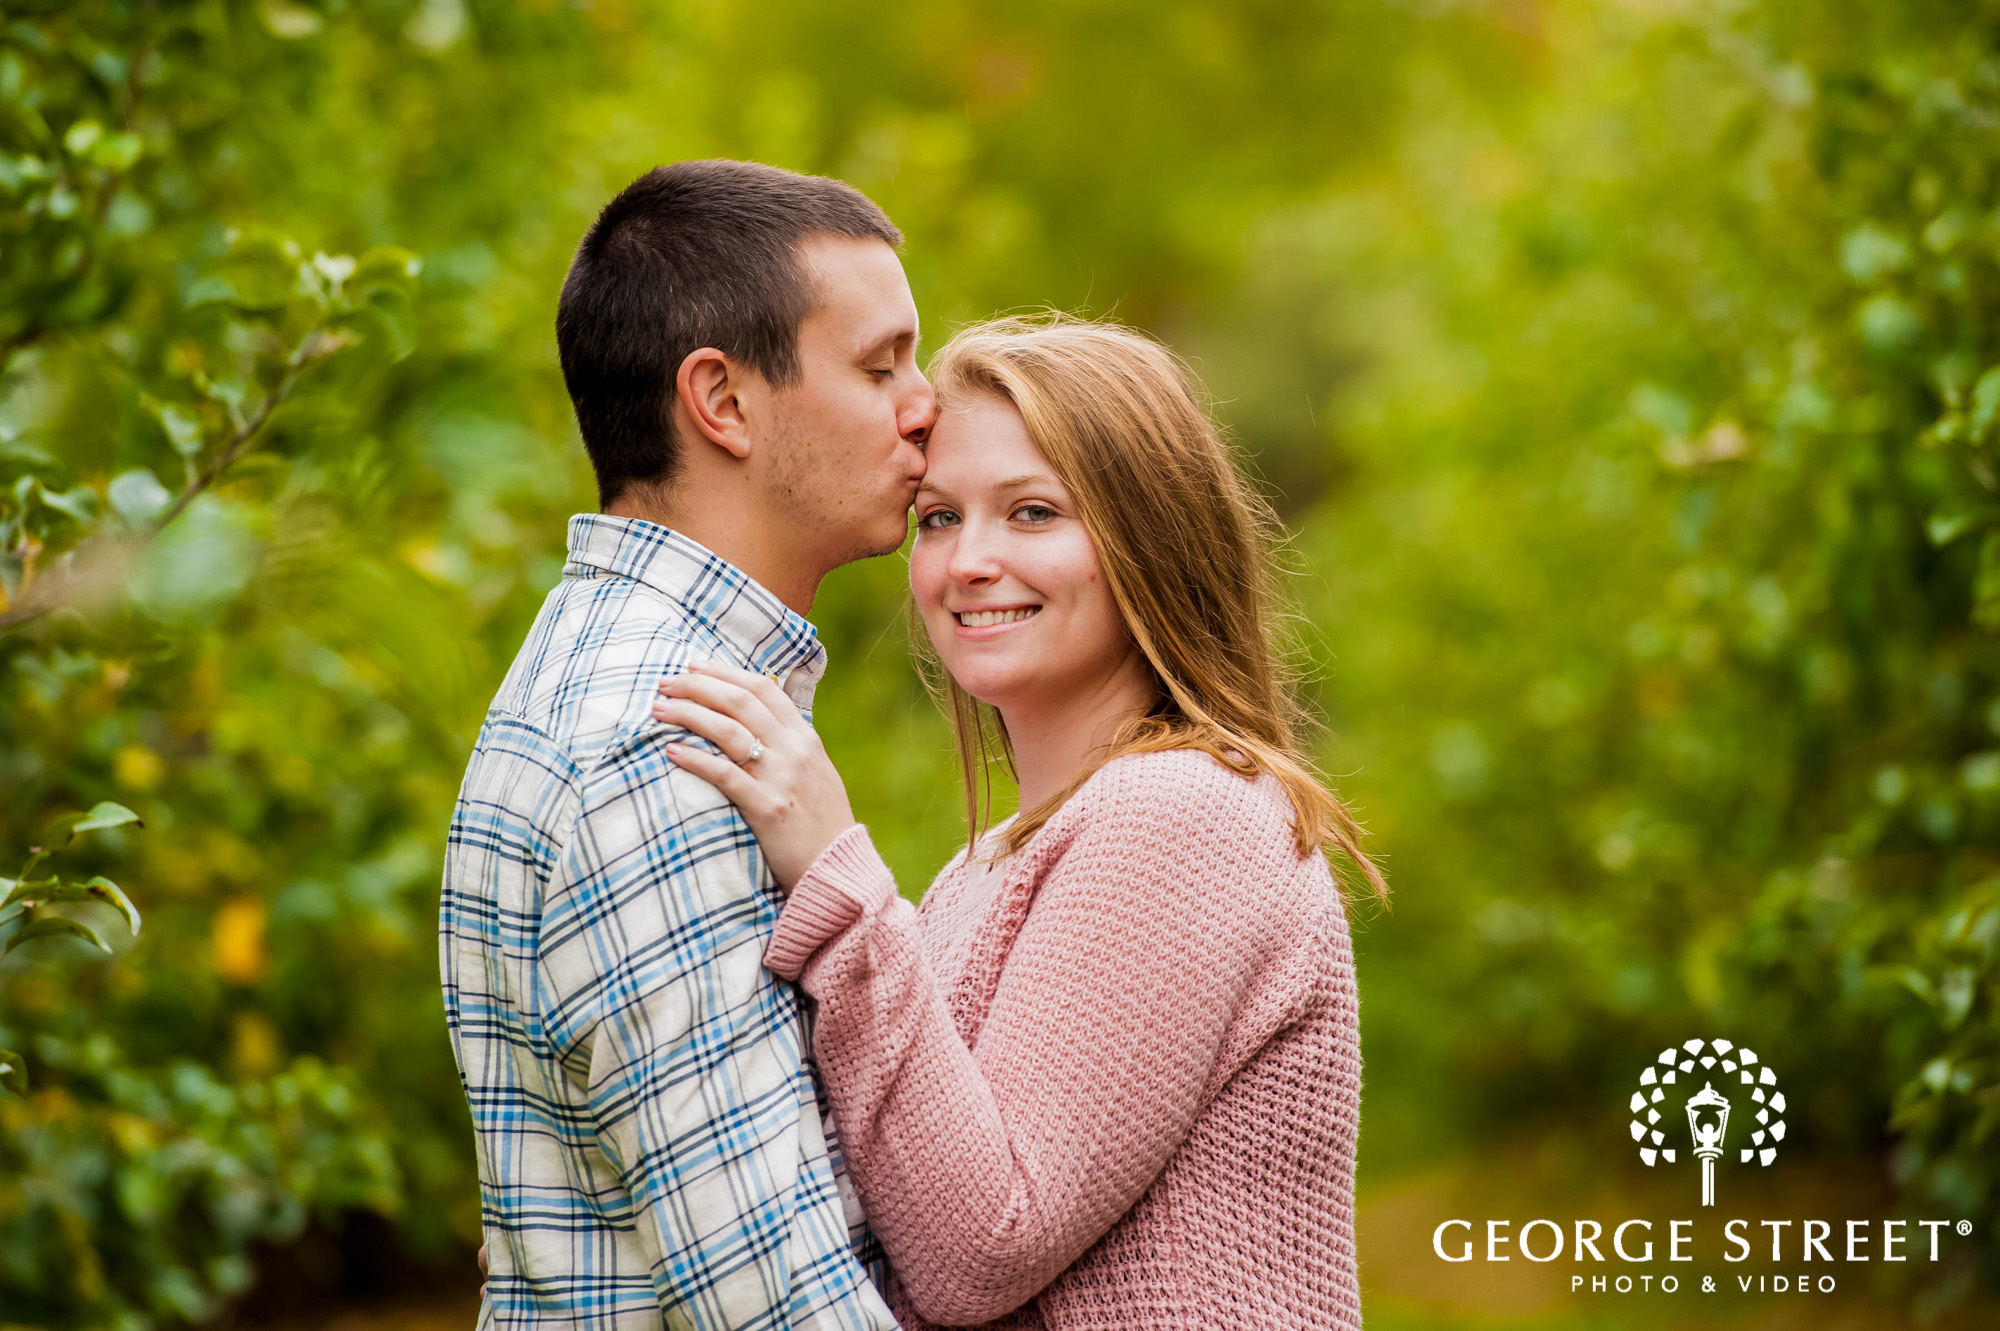 lyman orchards cute greenery sweater hartford engagement photography 6